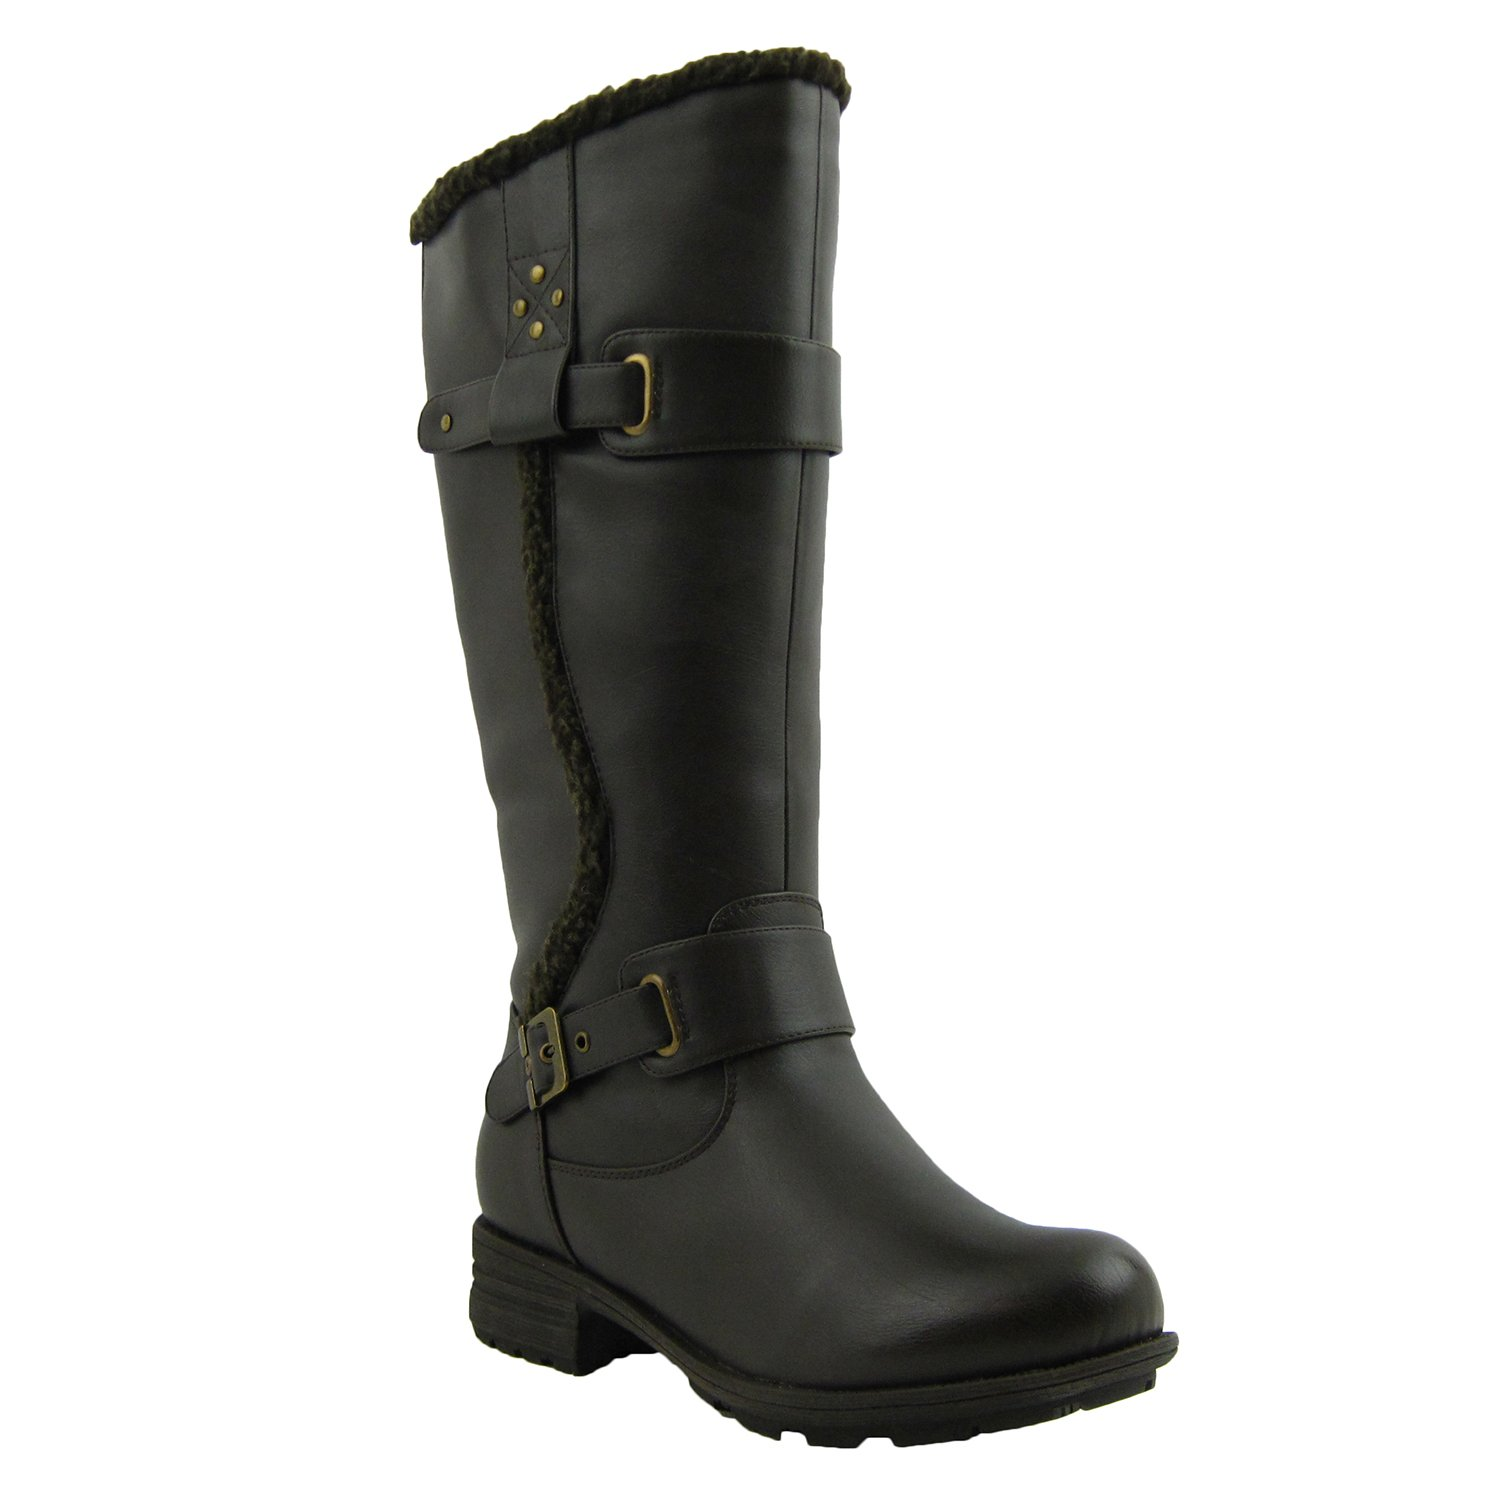 Comfy Moda Fashion Women's Winter Ice Snow Boots with Wide Calf Wide Toe Box Adjusted Calf Full Lined Water Resistant Cold Weather Boots Memory Foam Ally